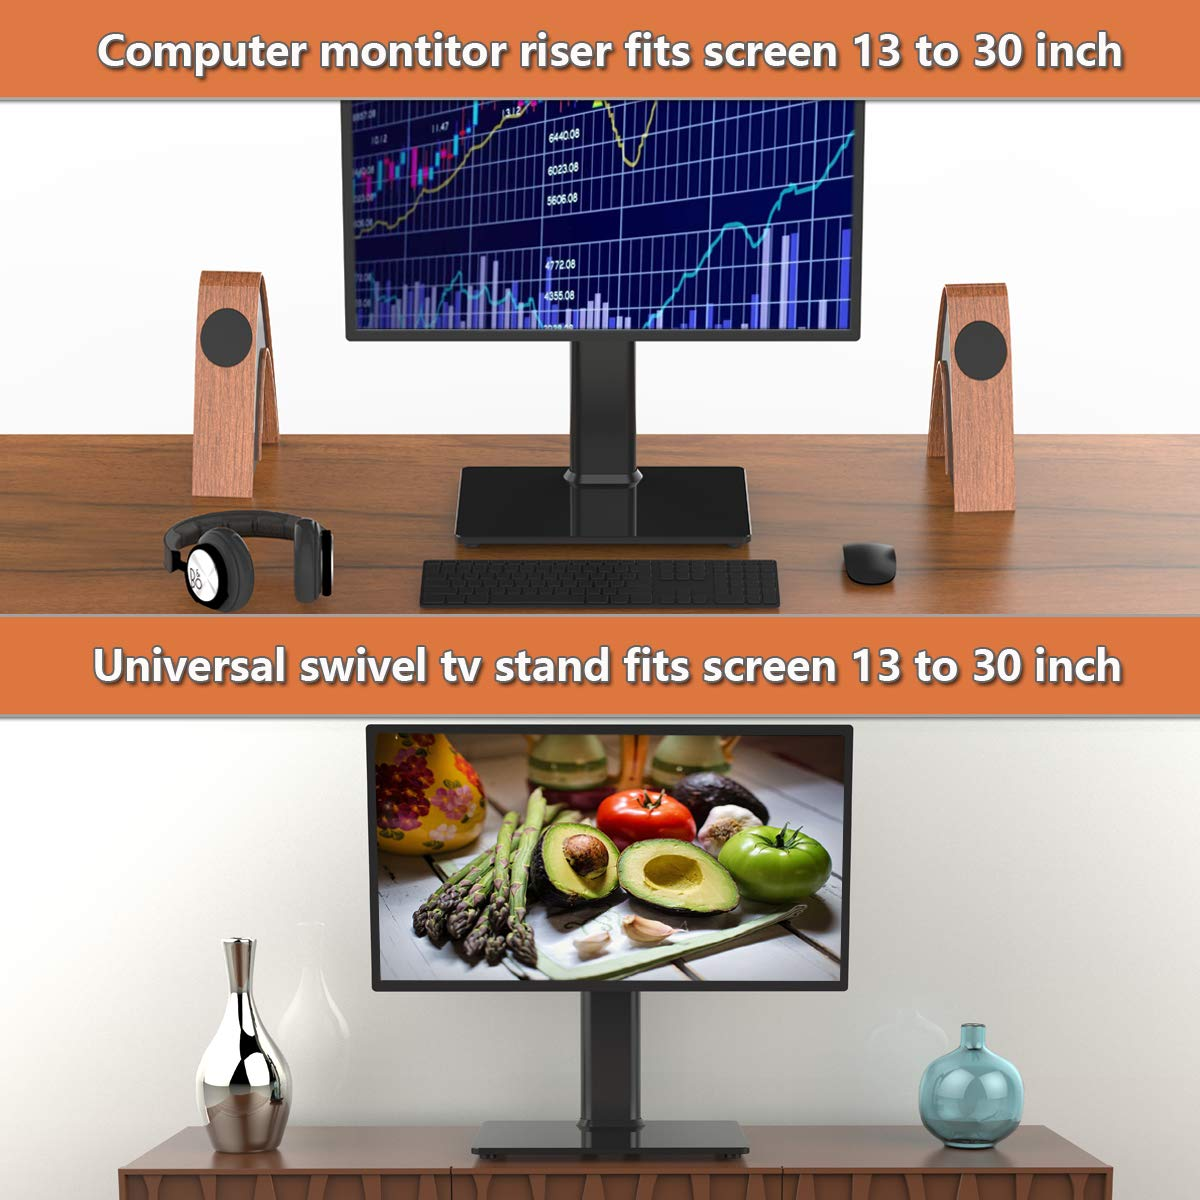 Single LCD Computer Monitor Free-Standing Desk Stand Riser for 13 inch to 32 inch Screen with Swivel, Height Adjustable, Rotation, Holds One (1) Screen up to 77Lbs(HT05B-001) by Hemudu (Image #3)